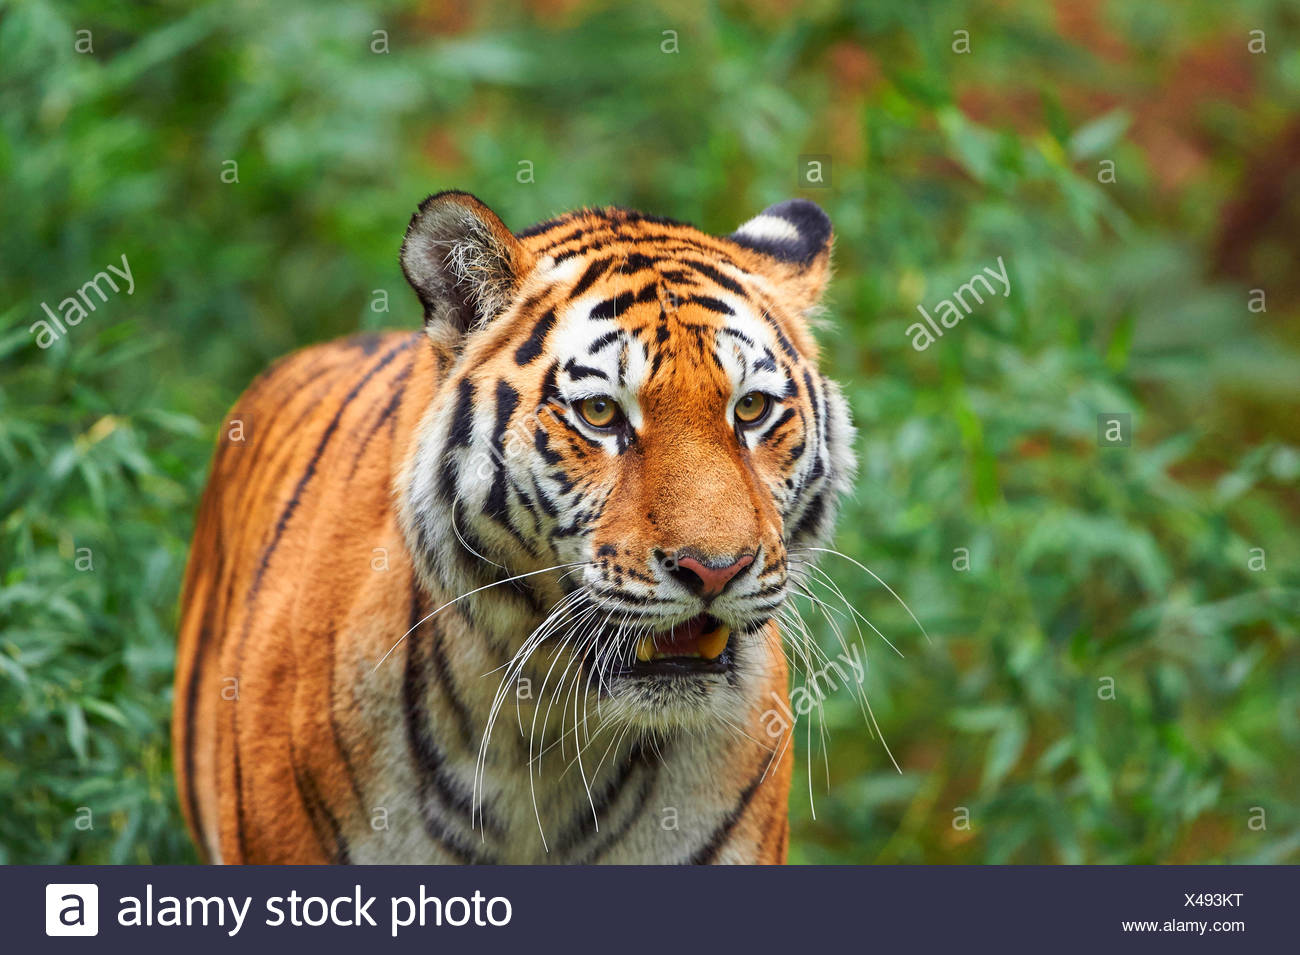 Siberian tiger, Amurian tiger (Panthera tigris altaica), portrait Stock Photo